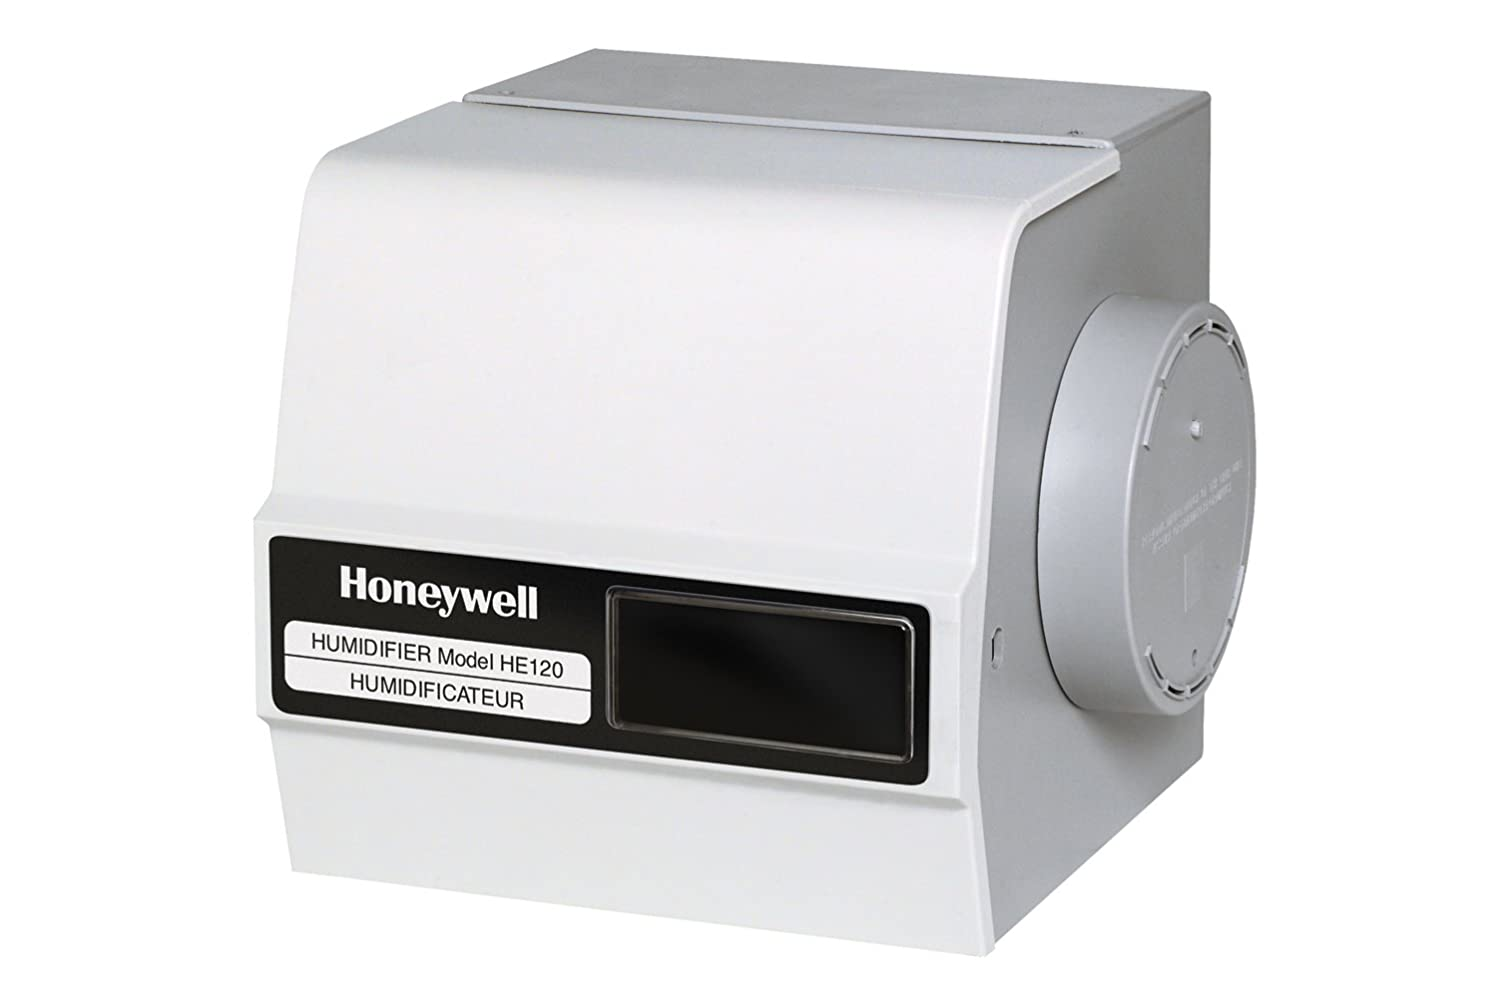 Honeywell HE120A Whole House Humidifier Review